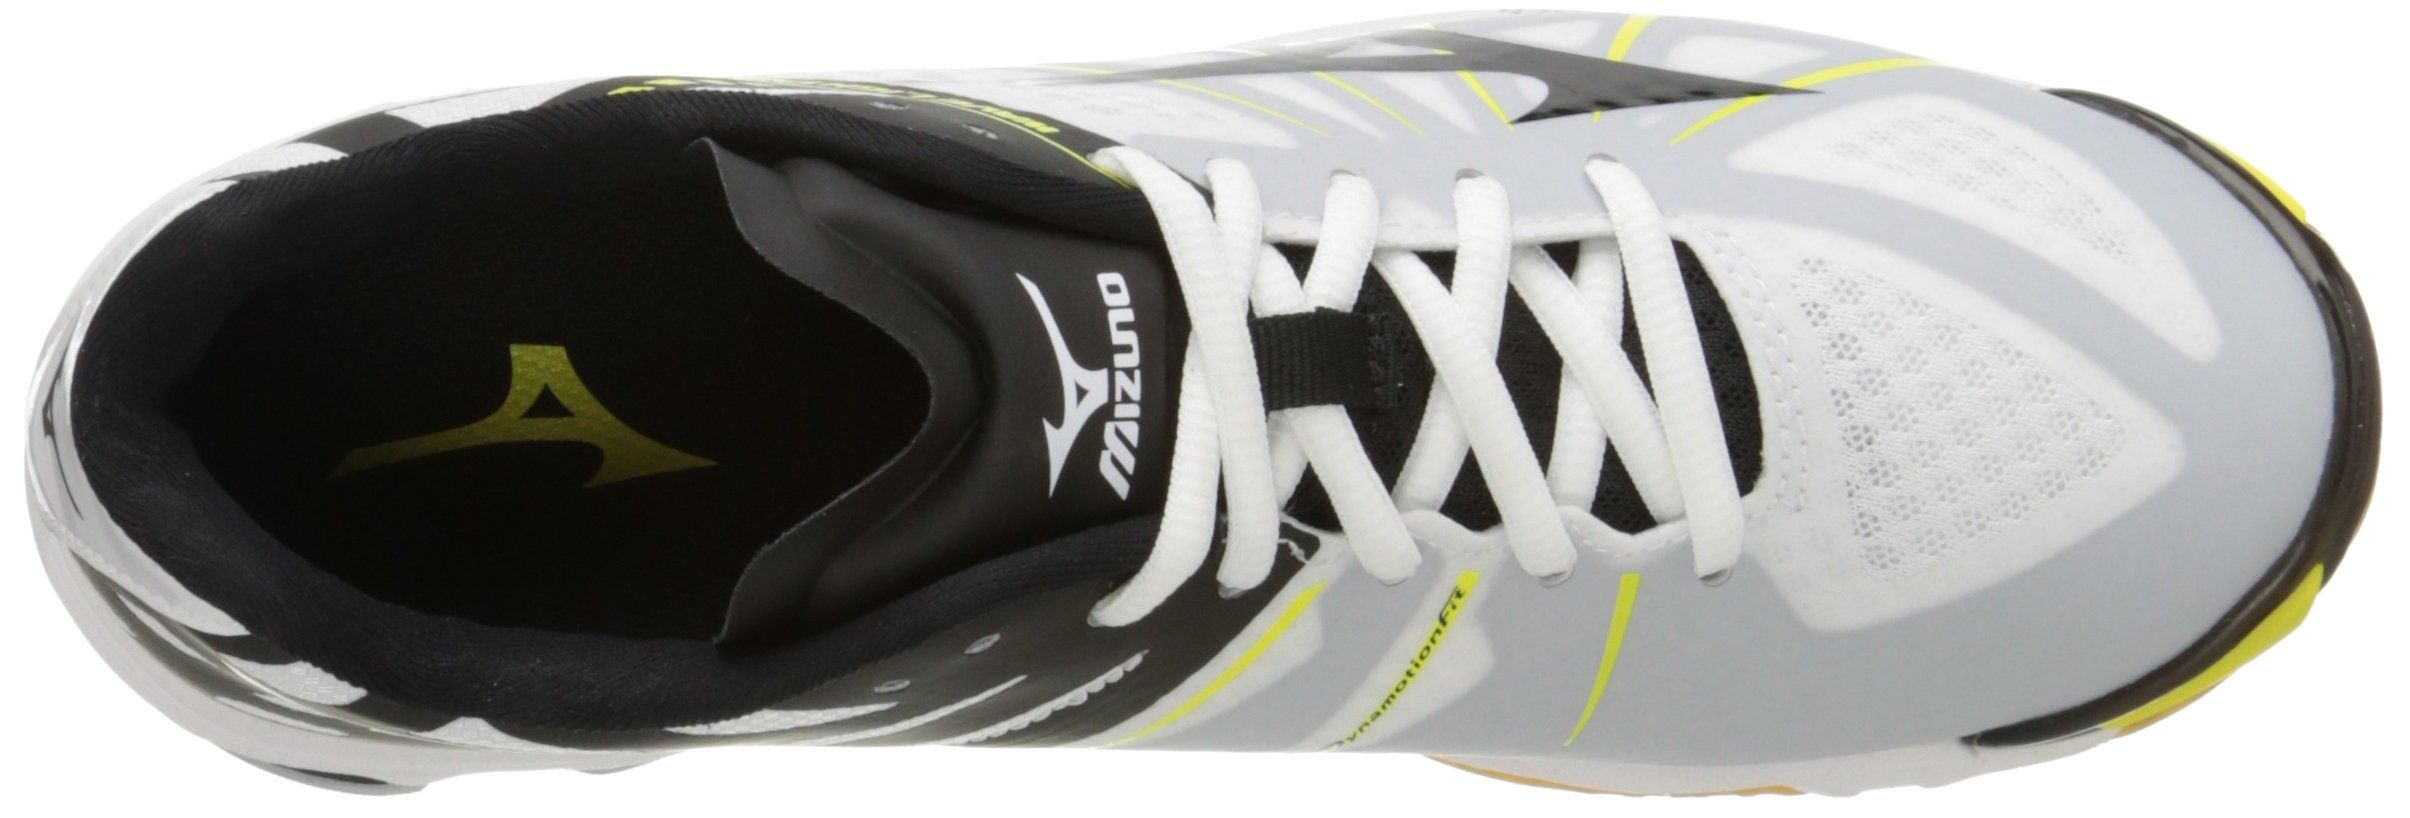 Mizuno Womens Wave Lightning Z Woms Whbk Volleyball Shoe White Black 13 Bm Us Read More Reviews Of The Product By Visiting Th Volleyball Shoes Mizuno Women